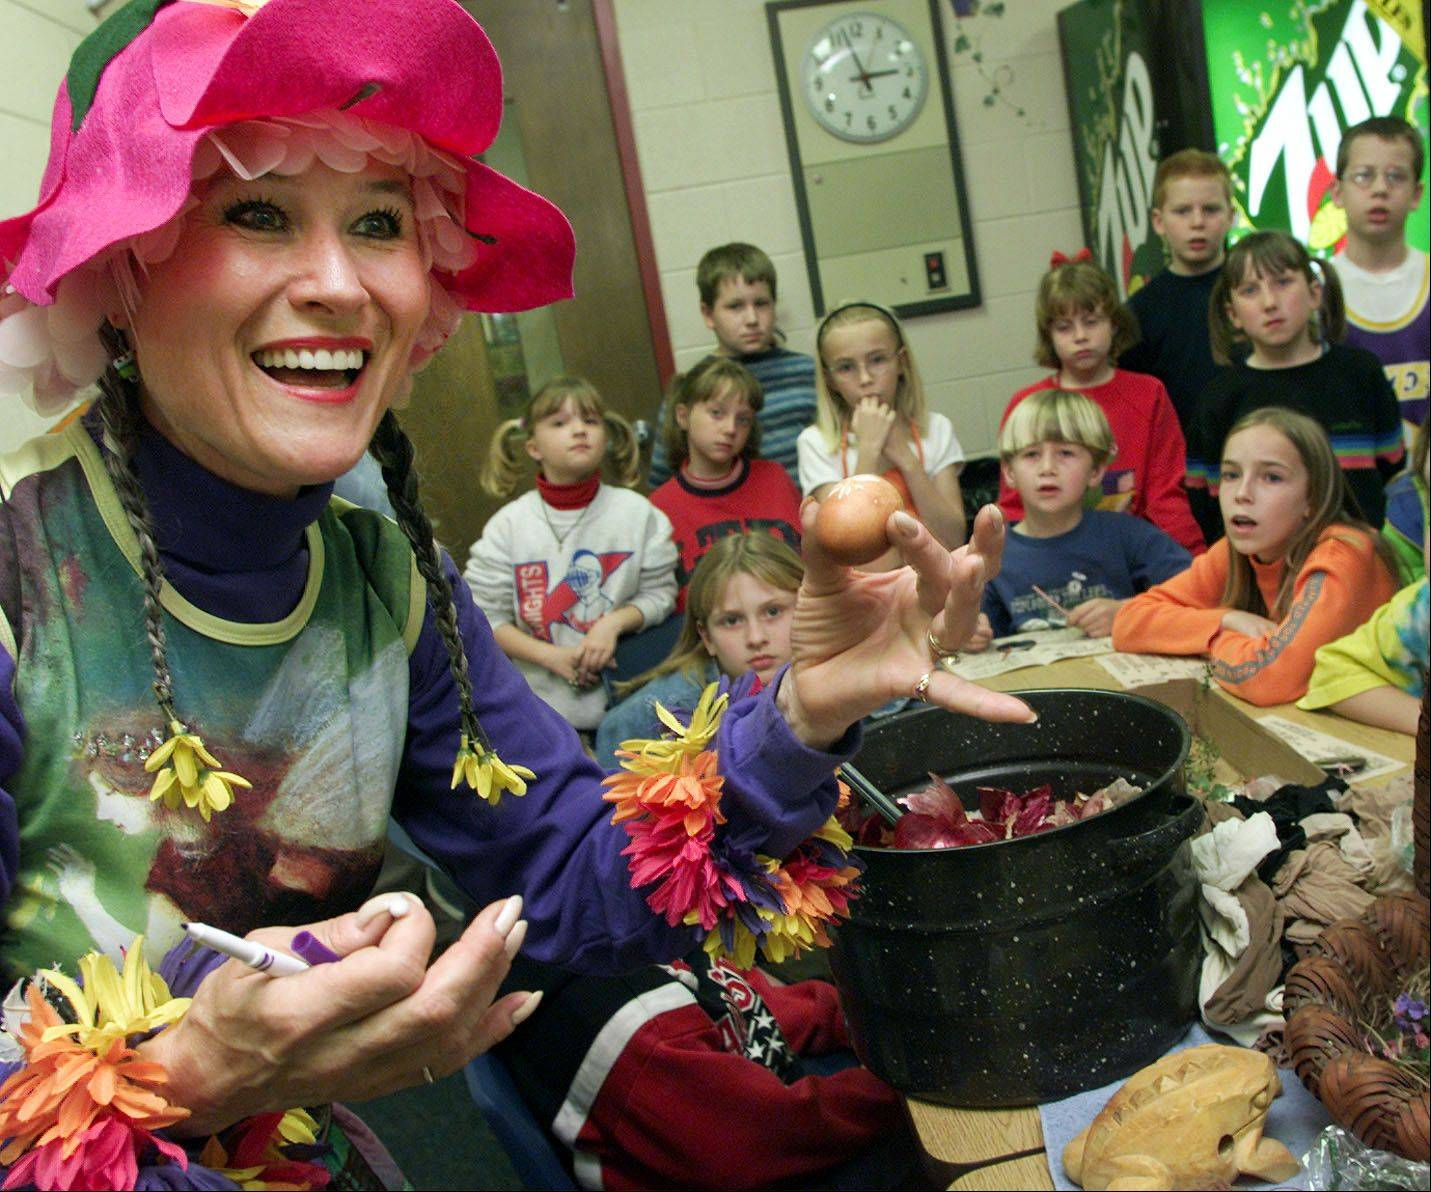 As Mother Nature, Lauing-Finzer holds up a naturally-decorated egg for kids at Kingsley Elementary in Naperville in this file photo.